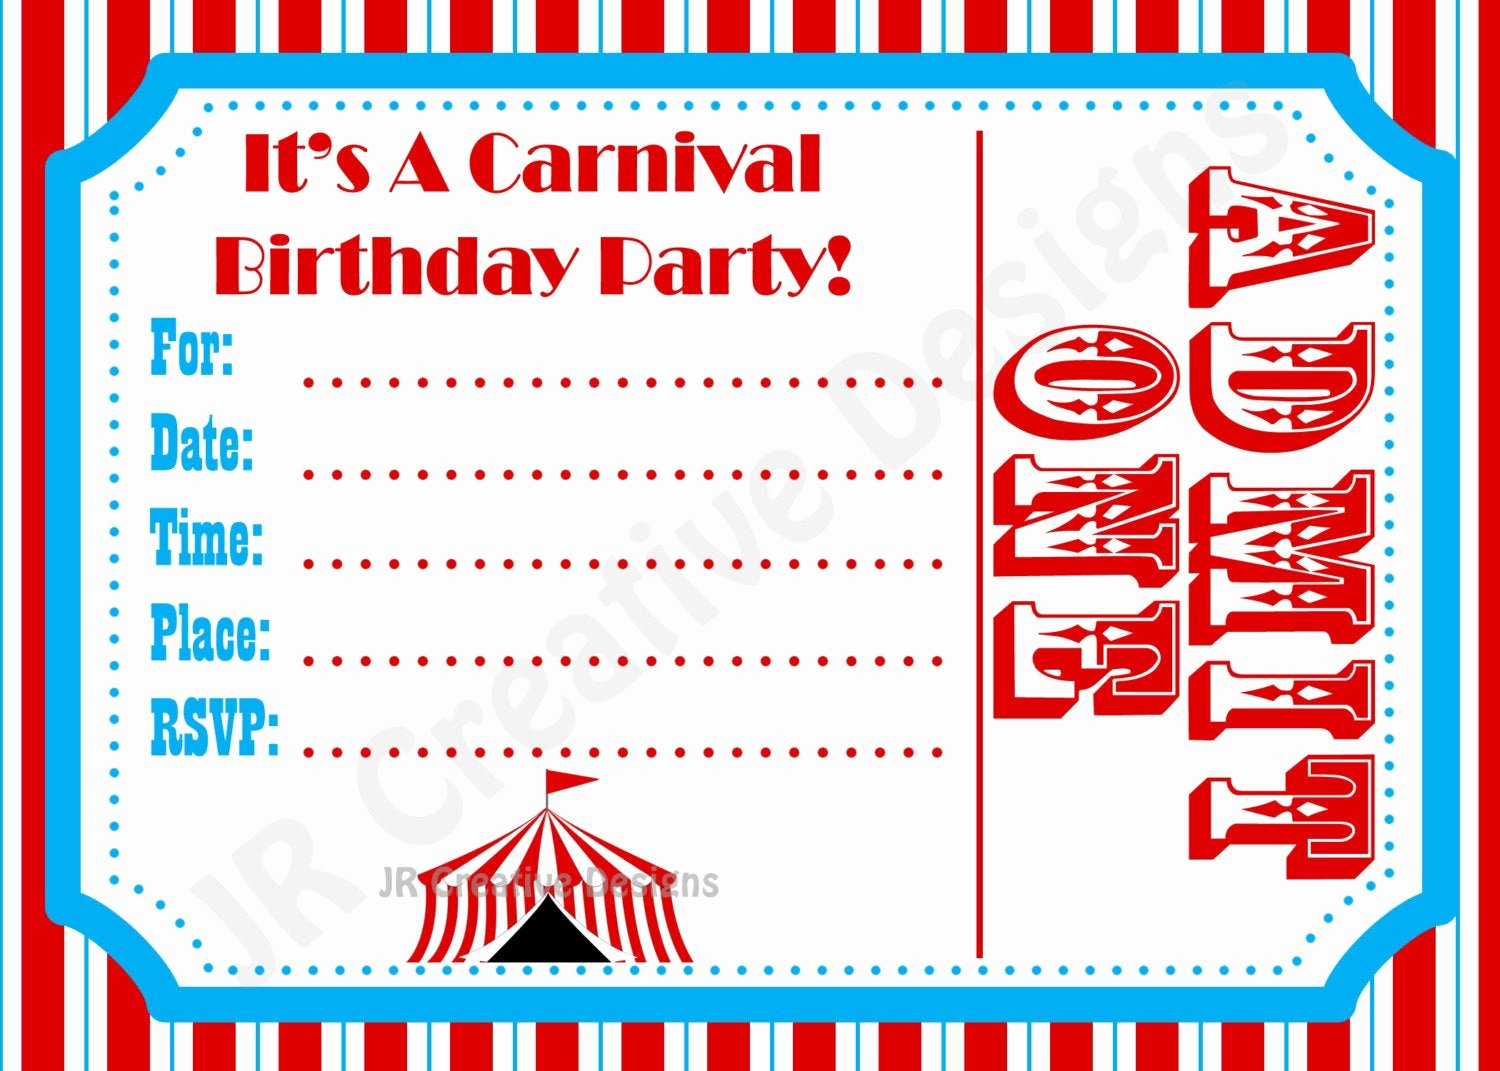 Carnival Ticket Invitation Template Free Beautiful Carnival Invite Circus Invite Circus by Jrcreativedesigns